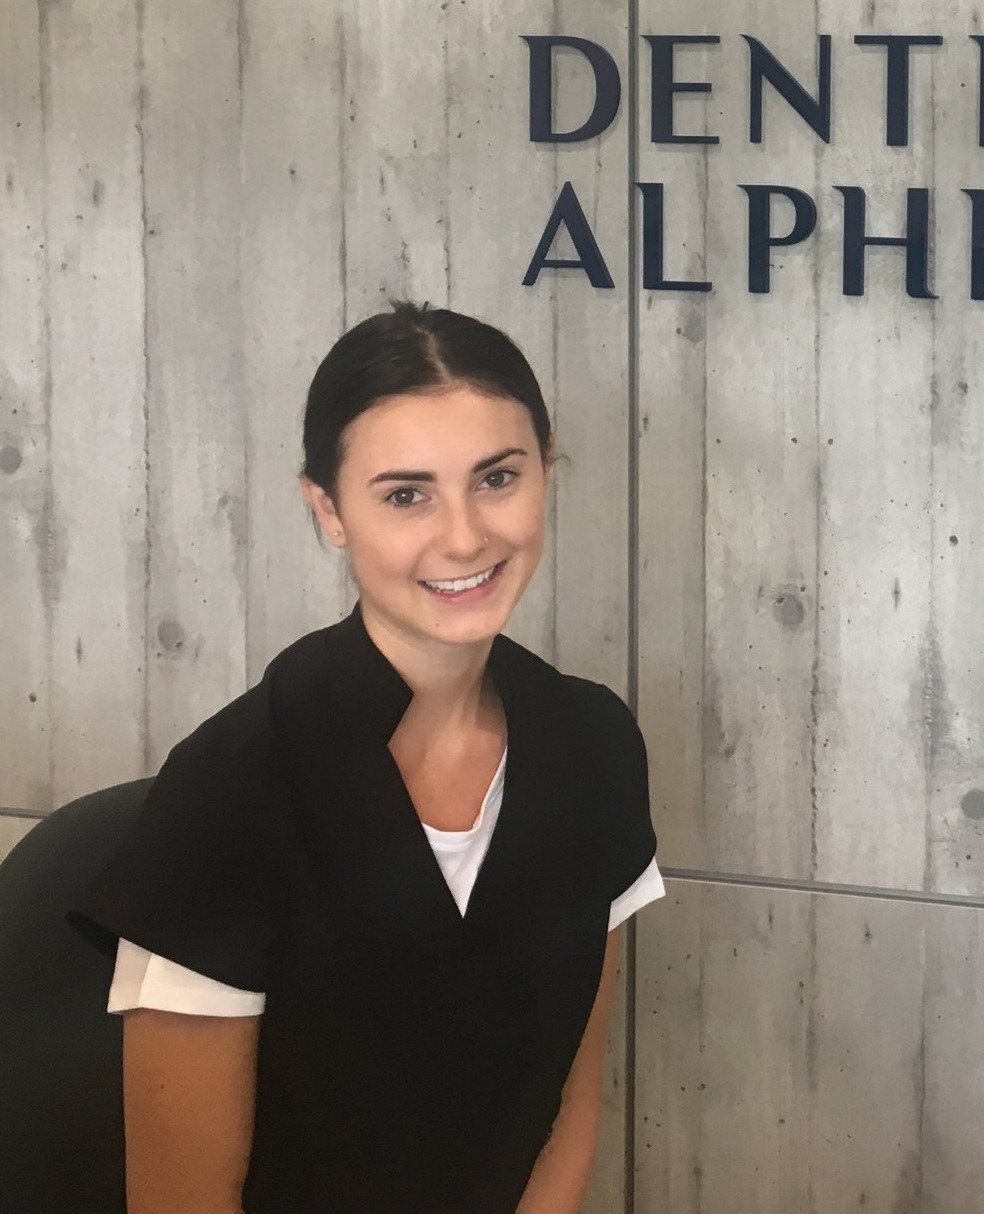 Dental nurse alphington